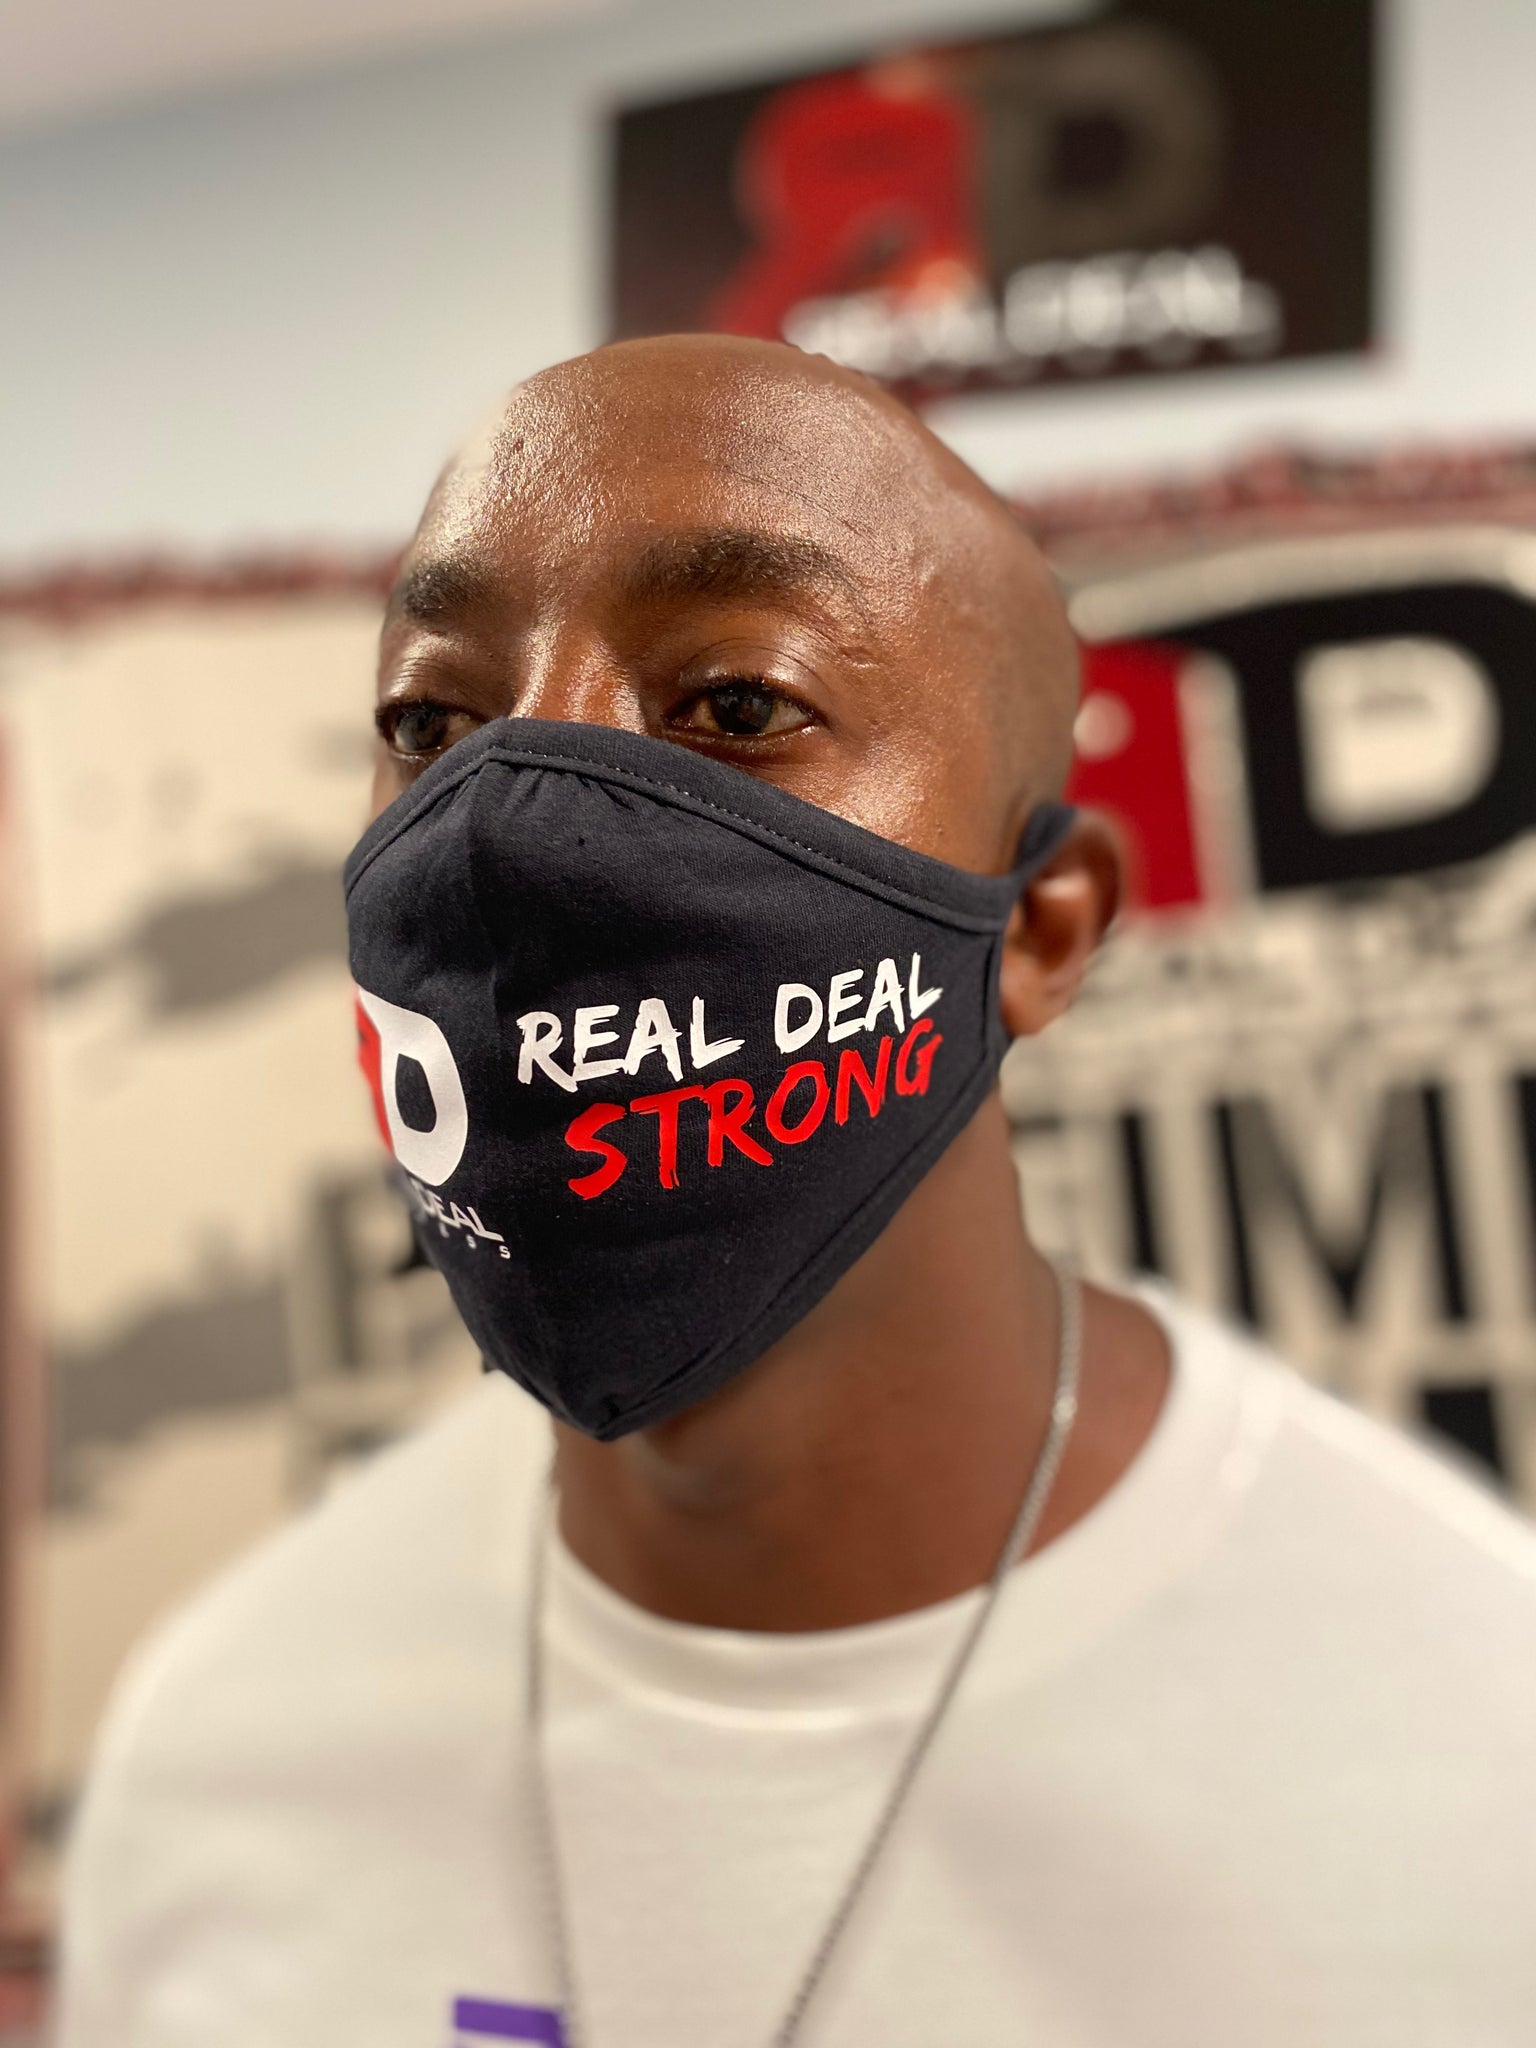 REAL DEAL FITNESS Mask 'REAL DEAL STRONG'